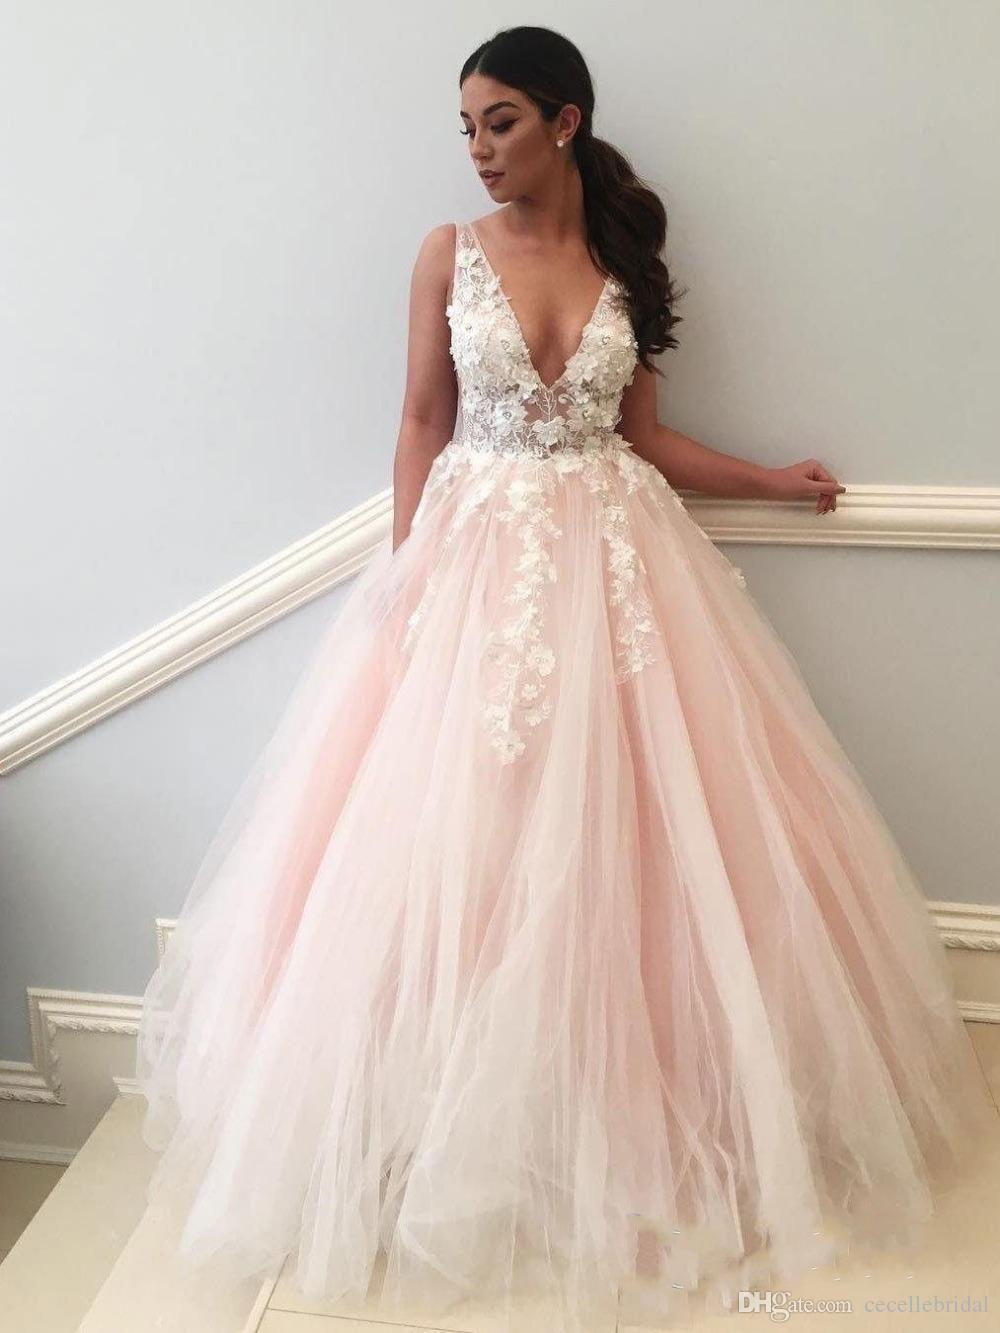 2019 New Arrival Blushing Pink A-line Long Prom Dresses With Straps Sexy V Neck Lace Flowers Teens Girls Prom Party Dress Illusion Top